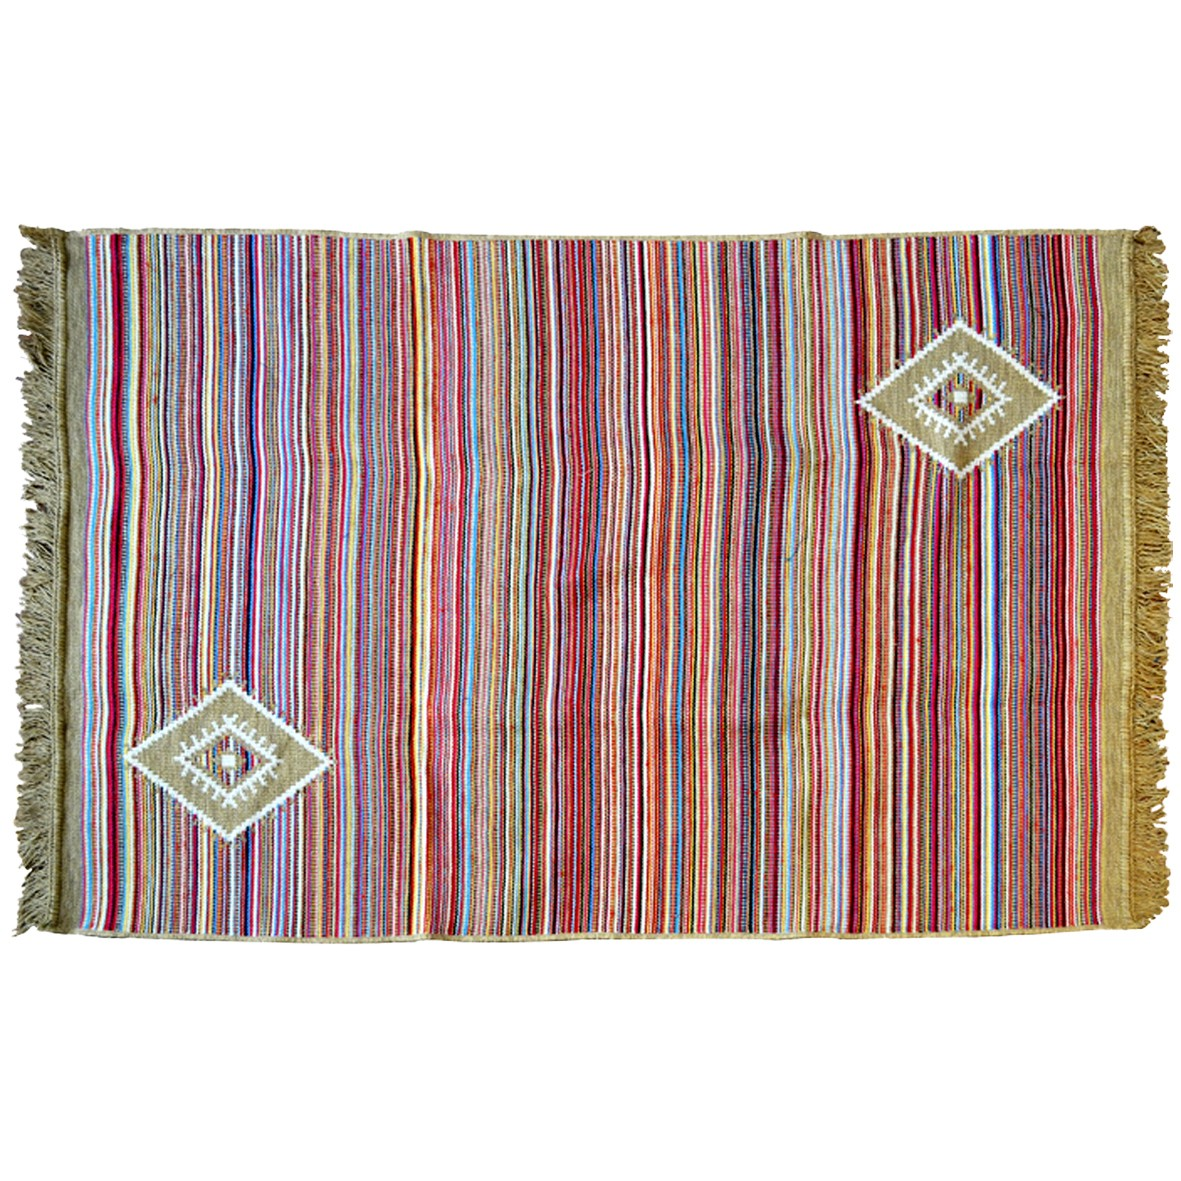 Bohemian Rug with Stripes, Beige / Multi